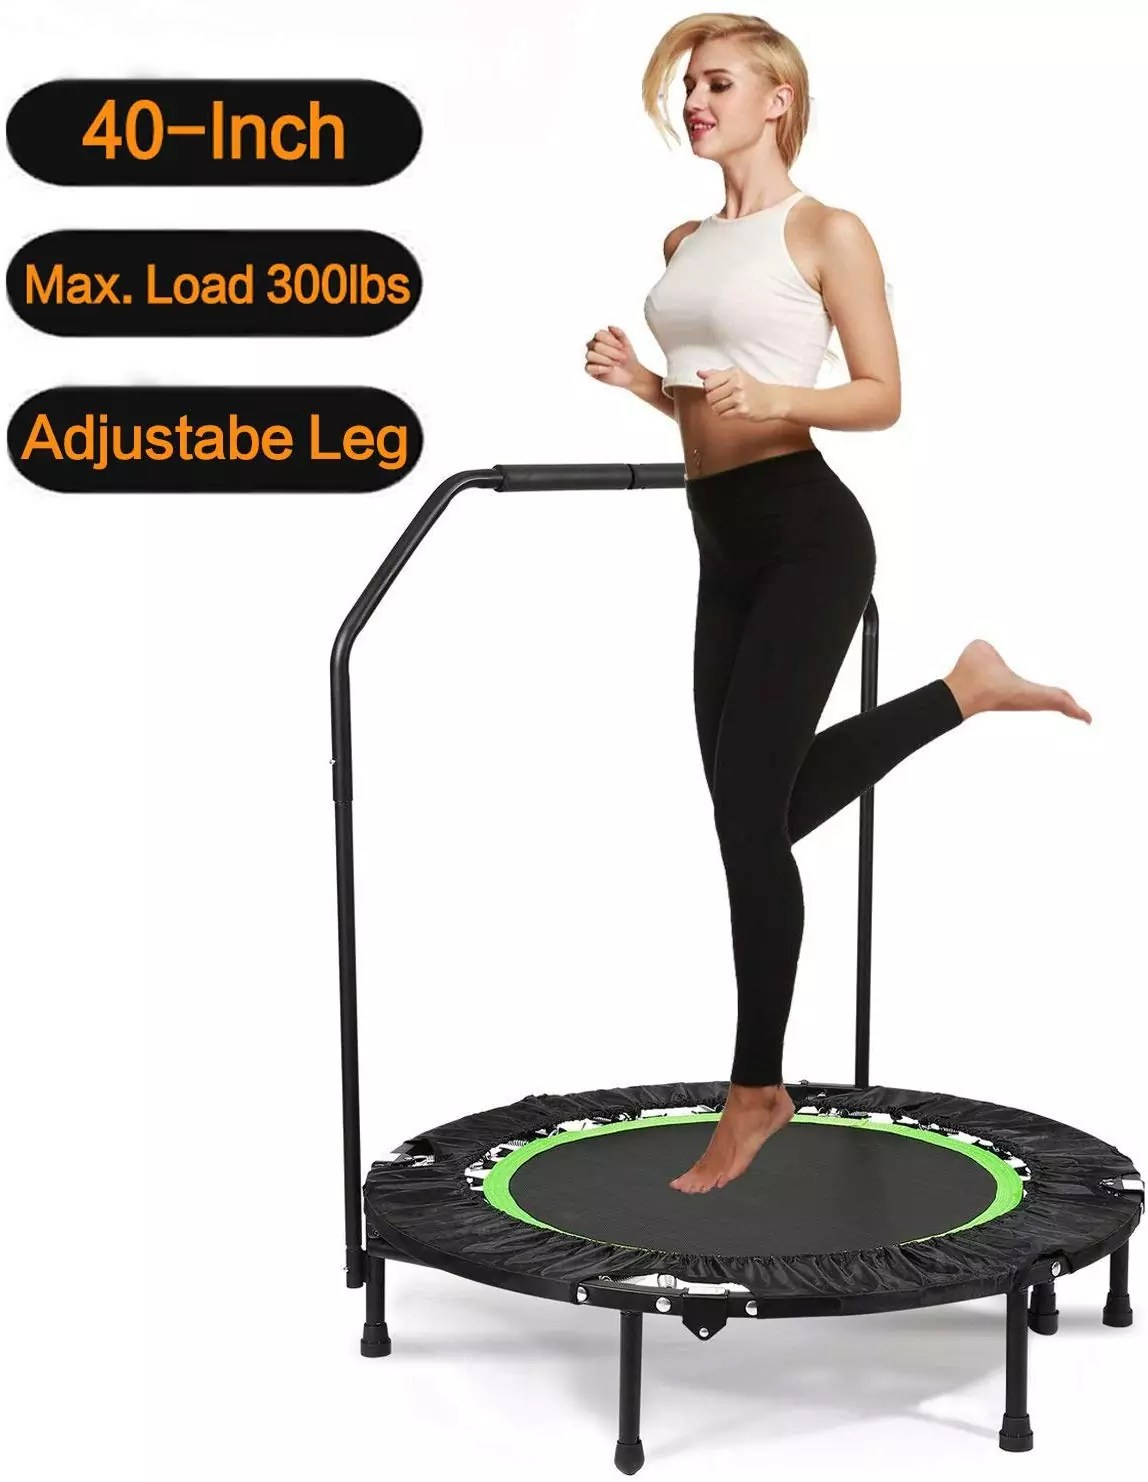 Balanu 40 Inch Mini Exercise Trampoline for Adults or Kids